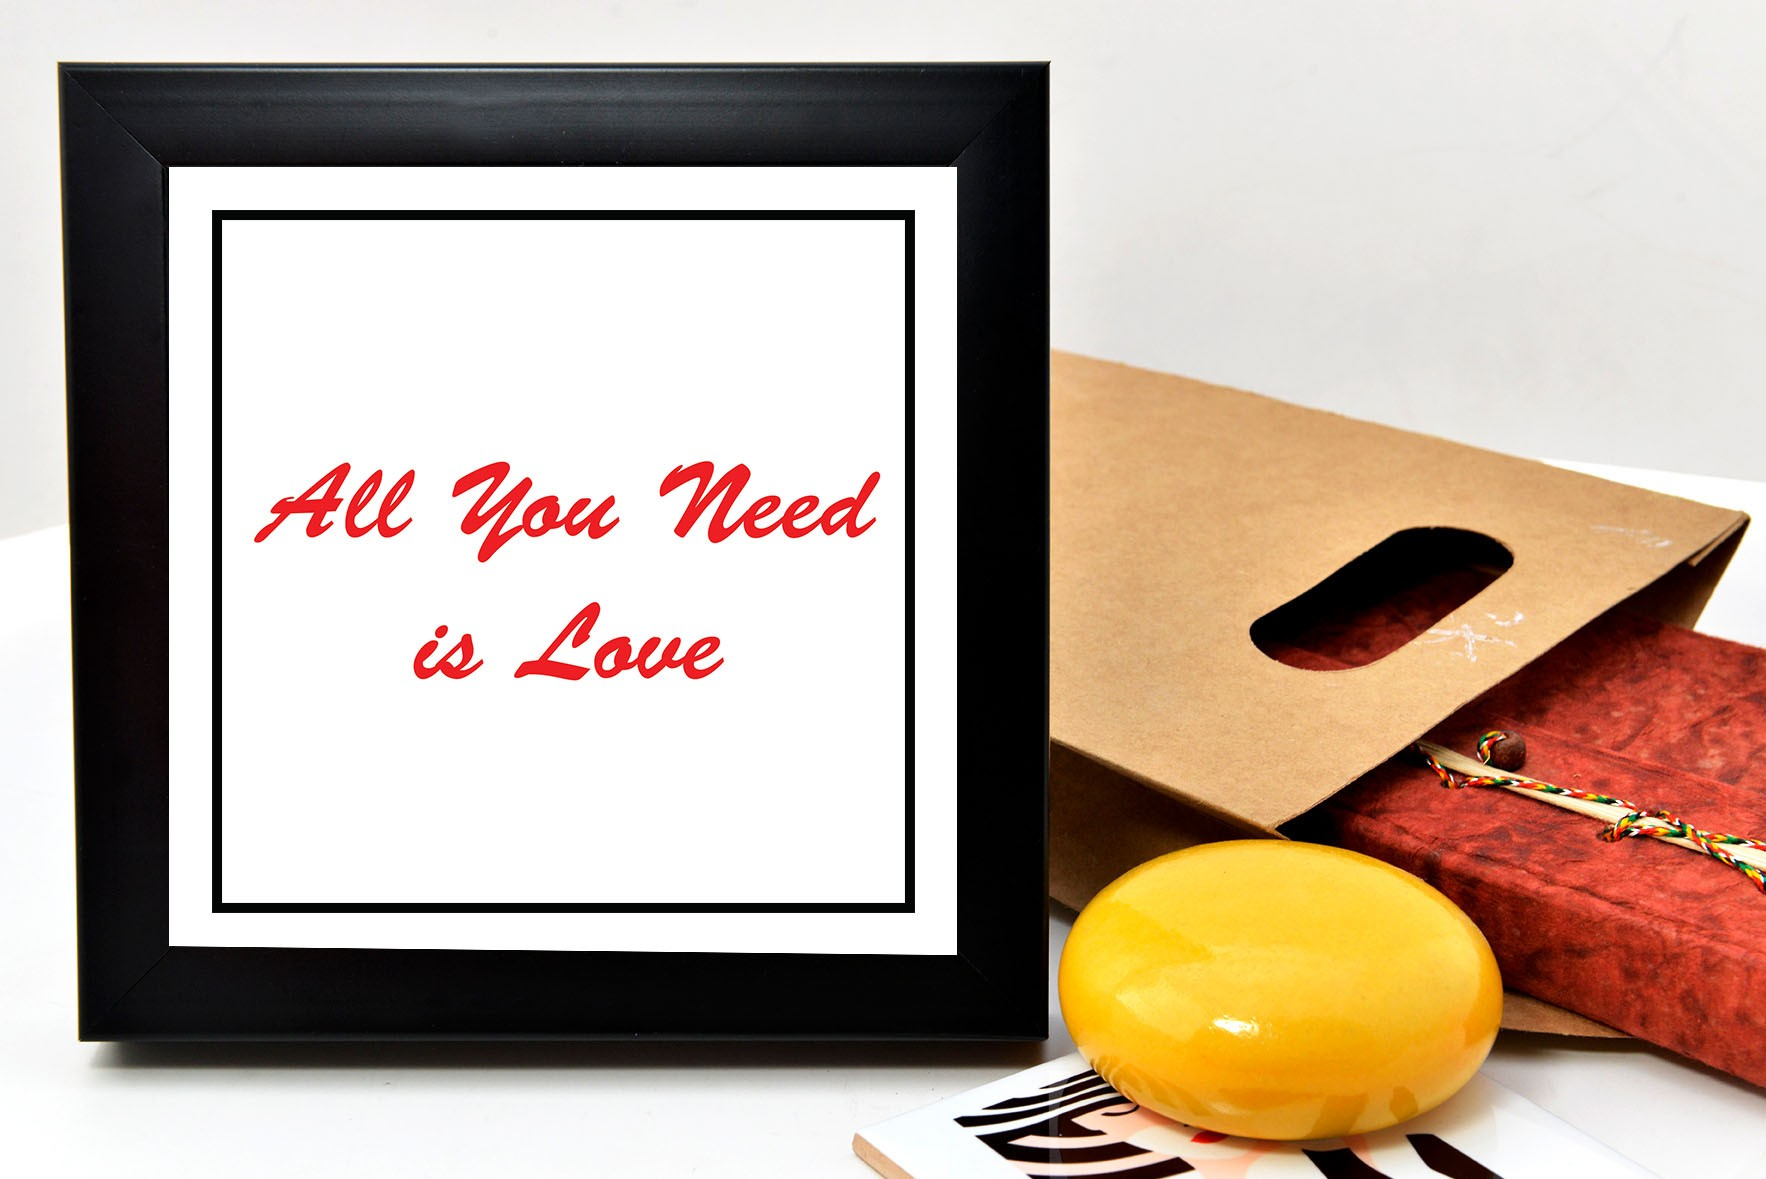 All you need is love frame